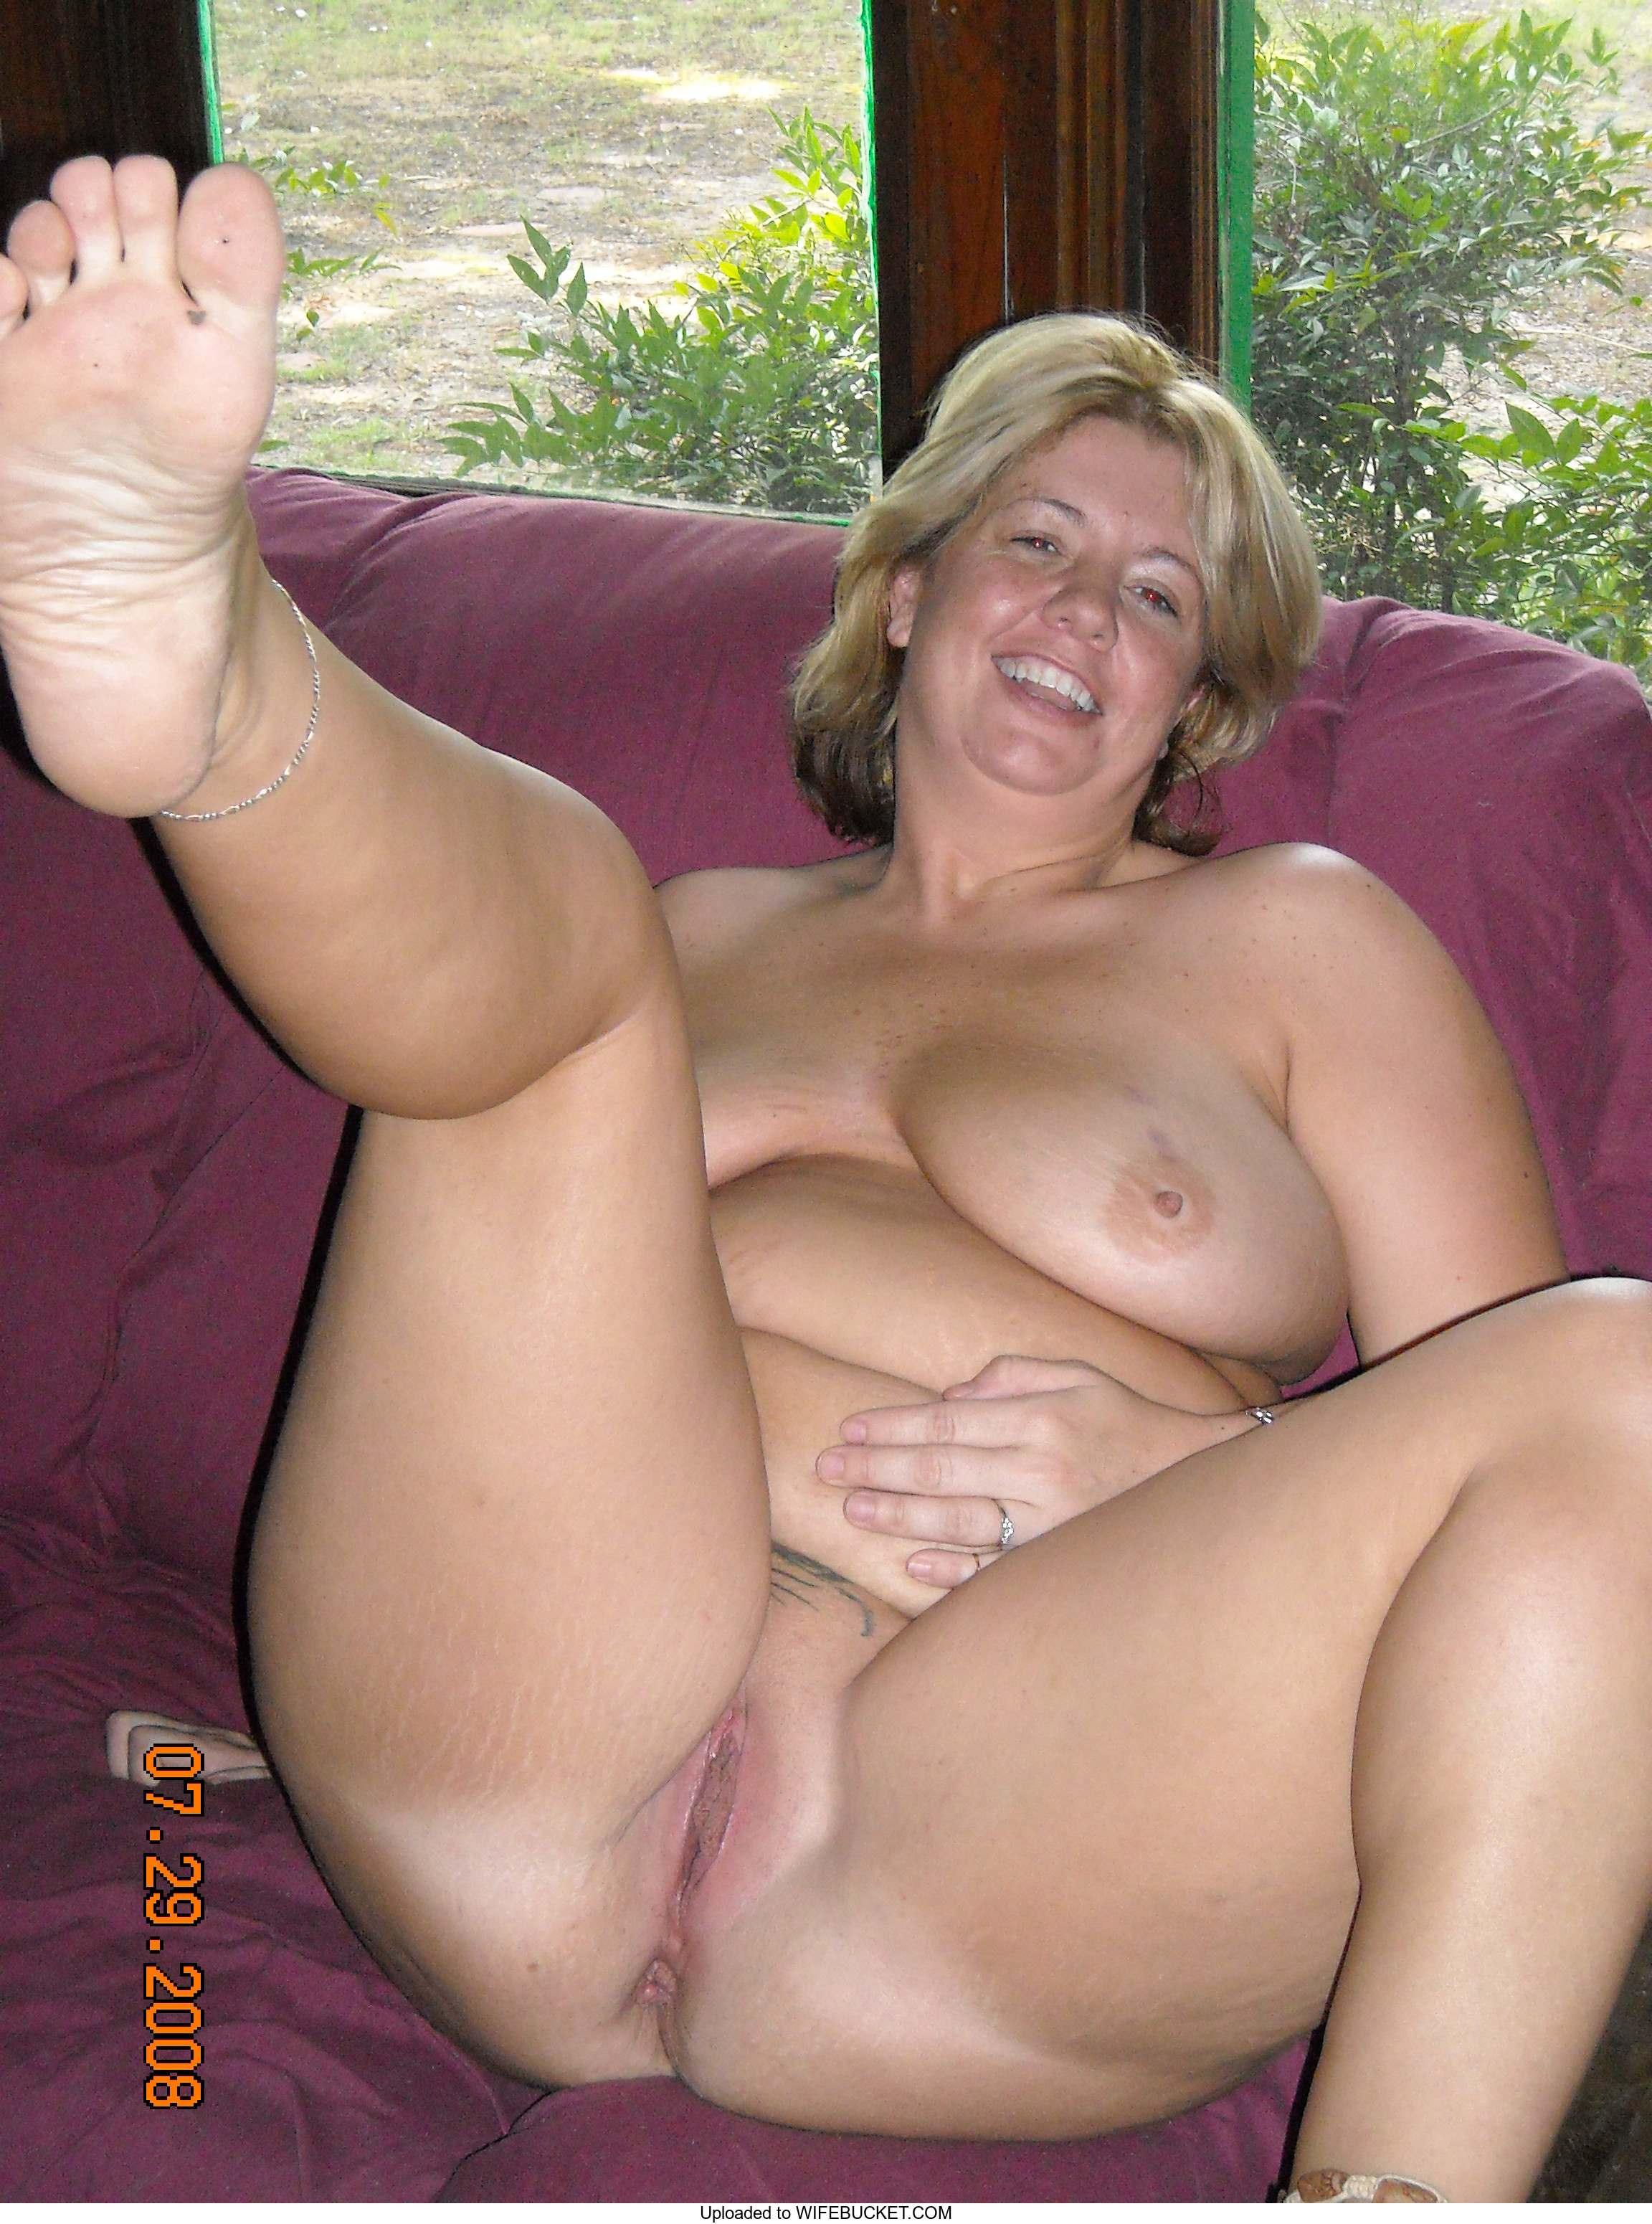 39 User-Uploaded Photos Of Real Wives Naked  Wifebucket -1914